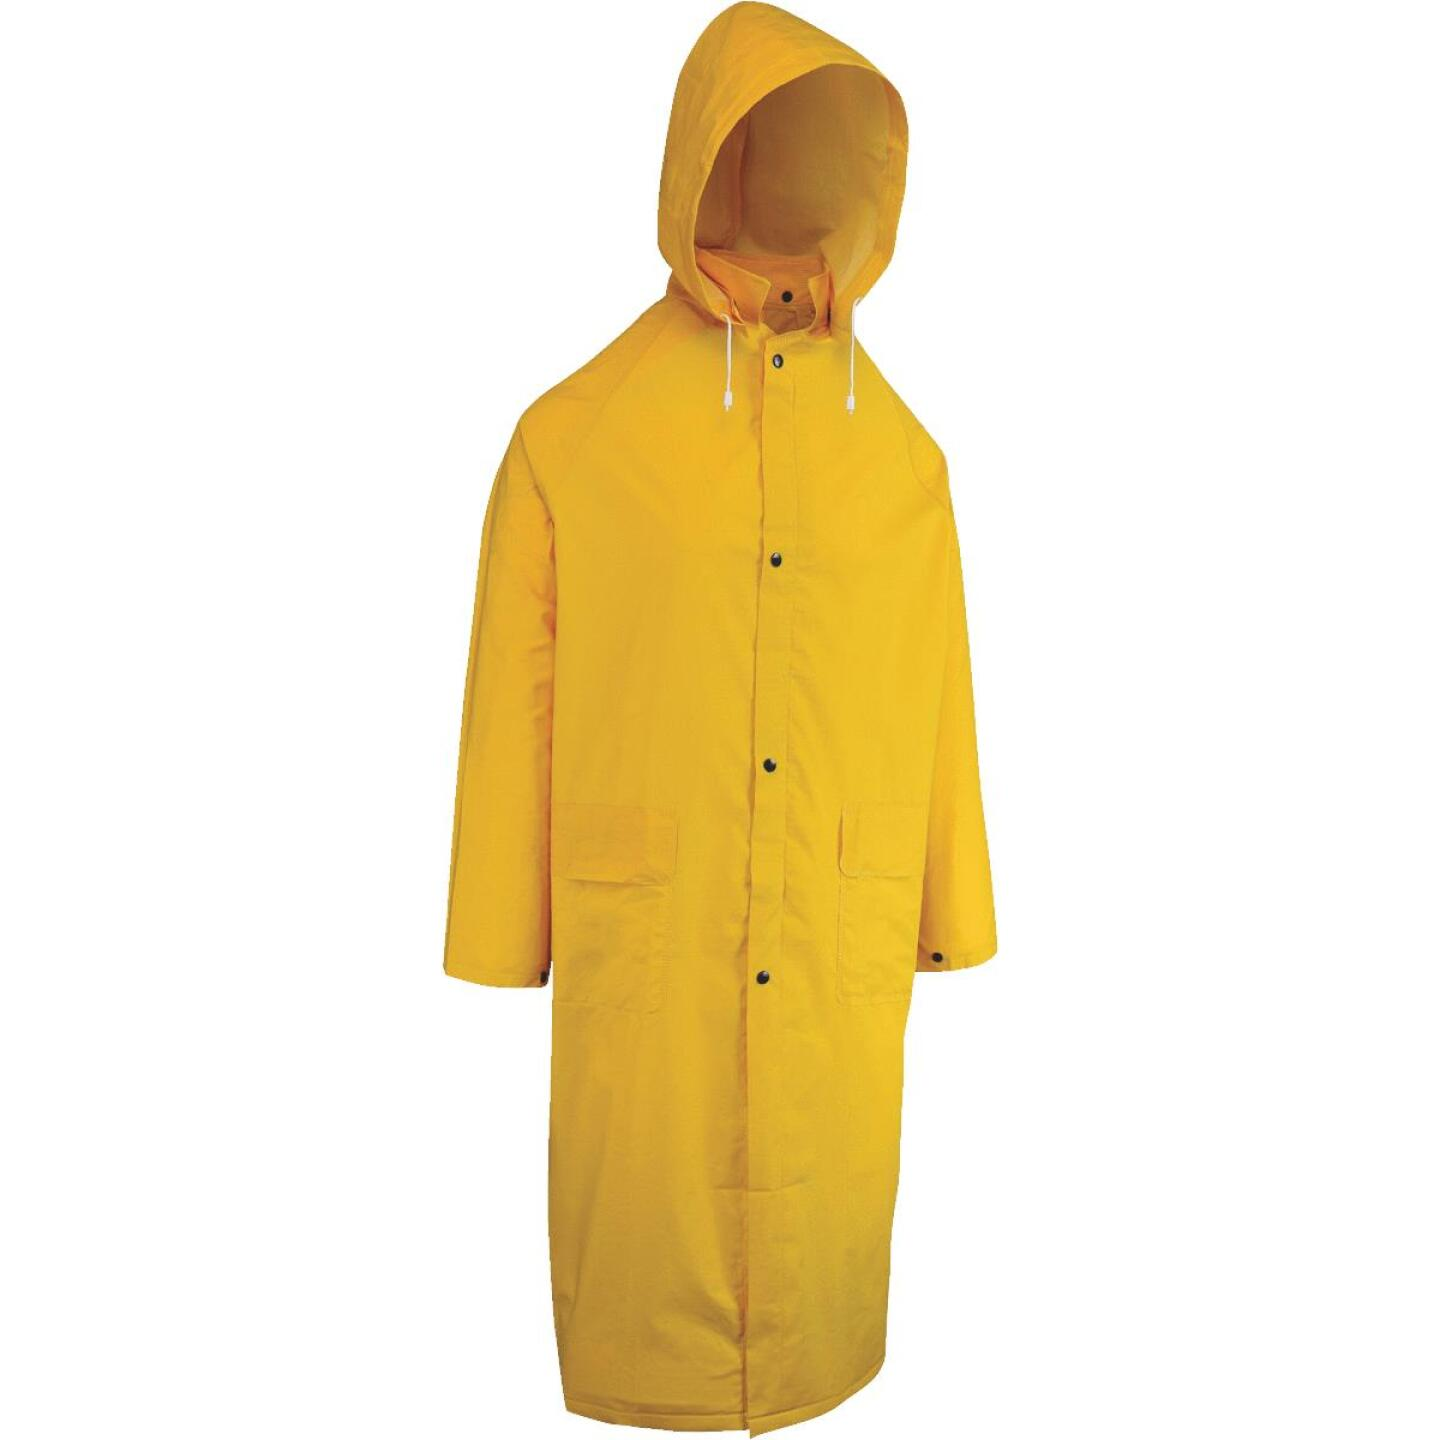 West Chester XL Safety Yellow PVC Trench Coat Image 1